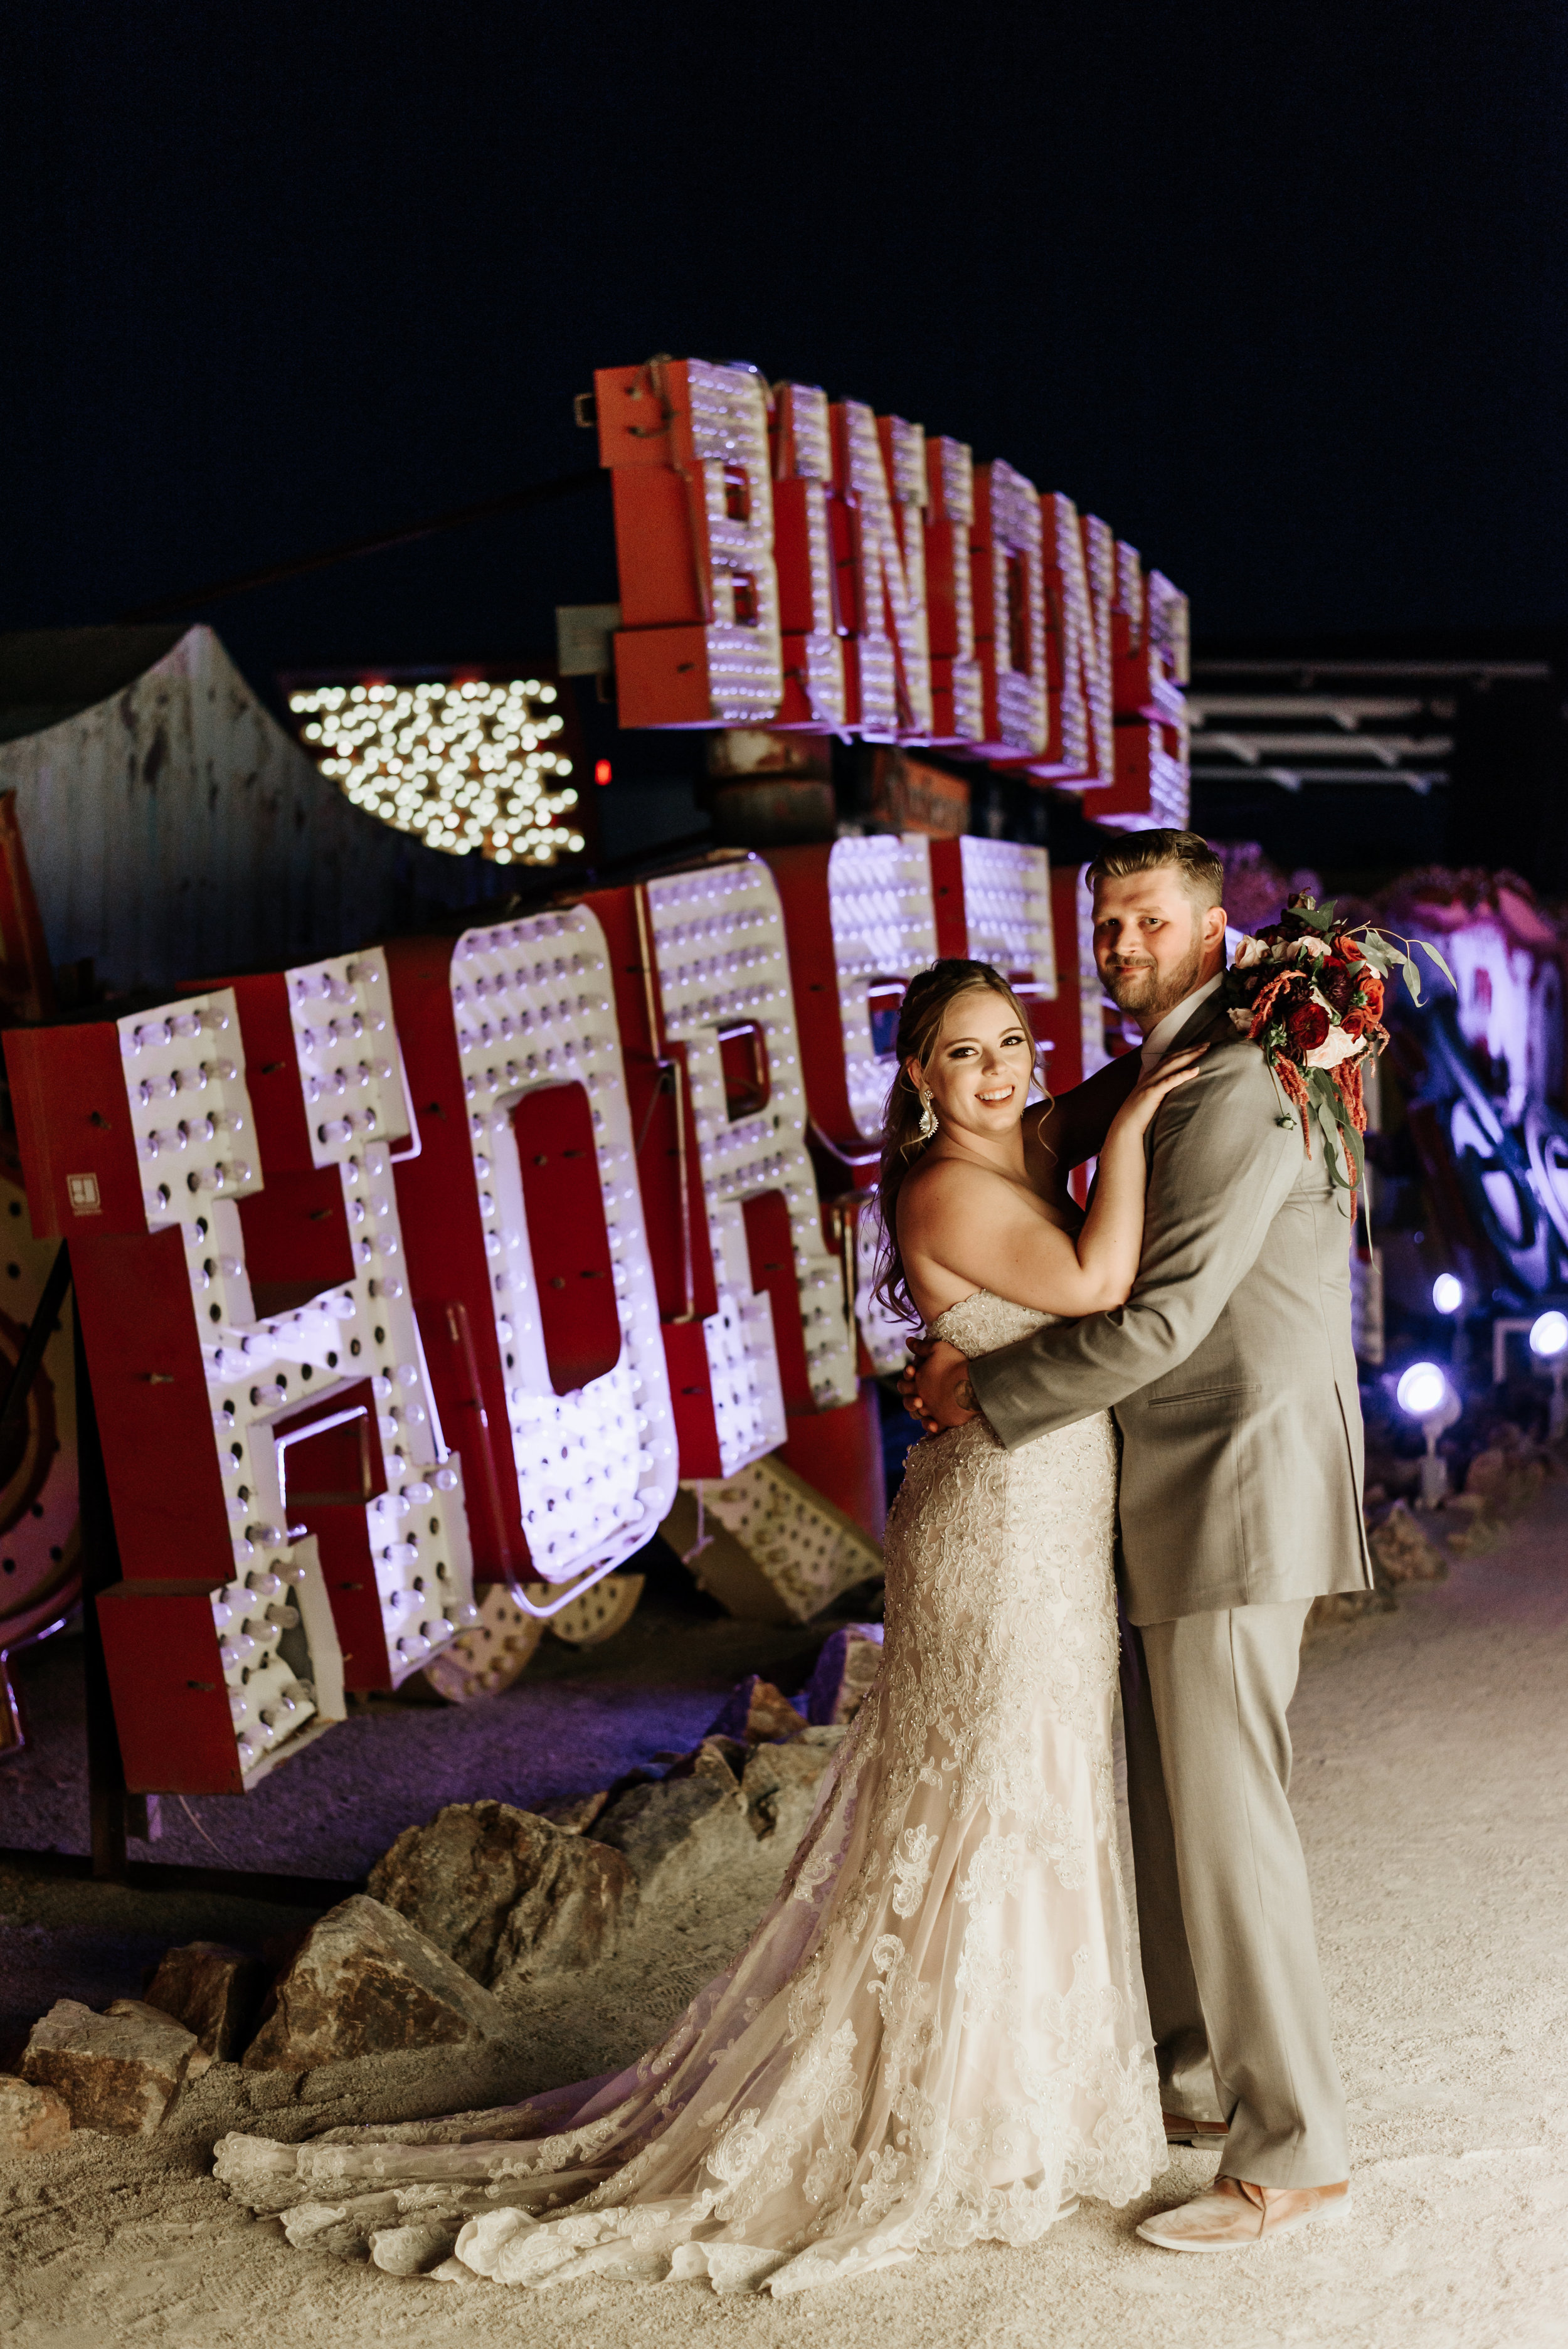 Neon-Museum-Wedding-Las-Vegas-Nevada-Golden-Nugget-Photography-by-V-Ally-and-Dan-6969.jpg